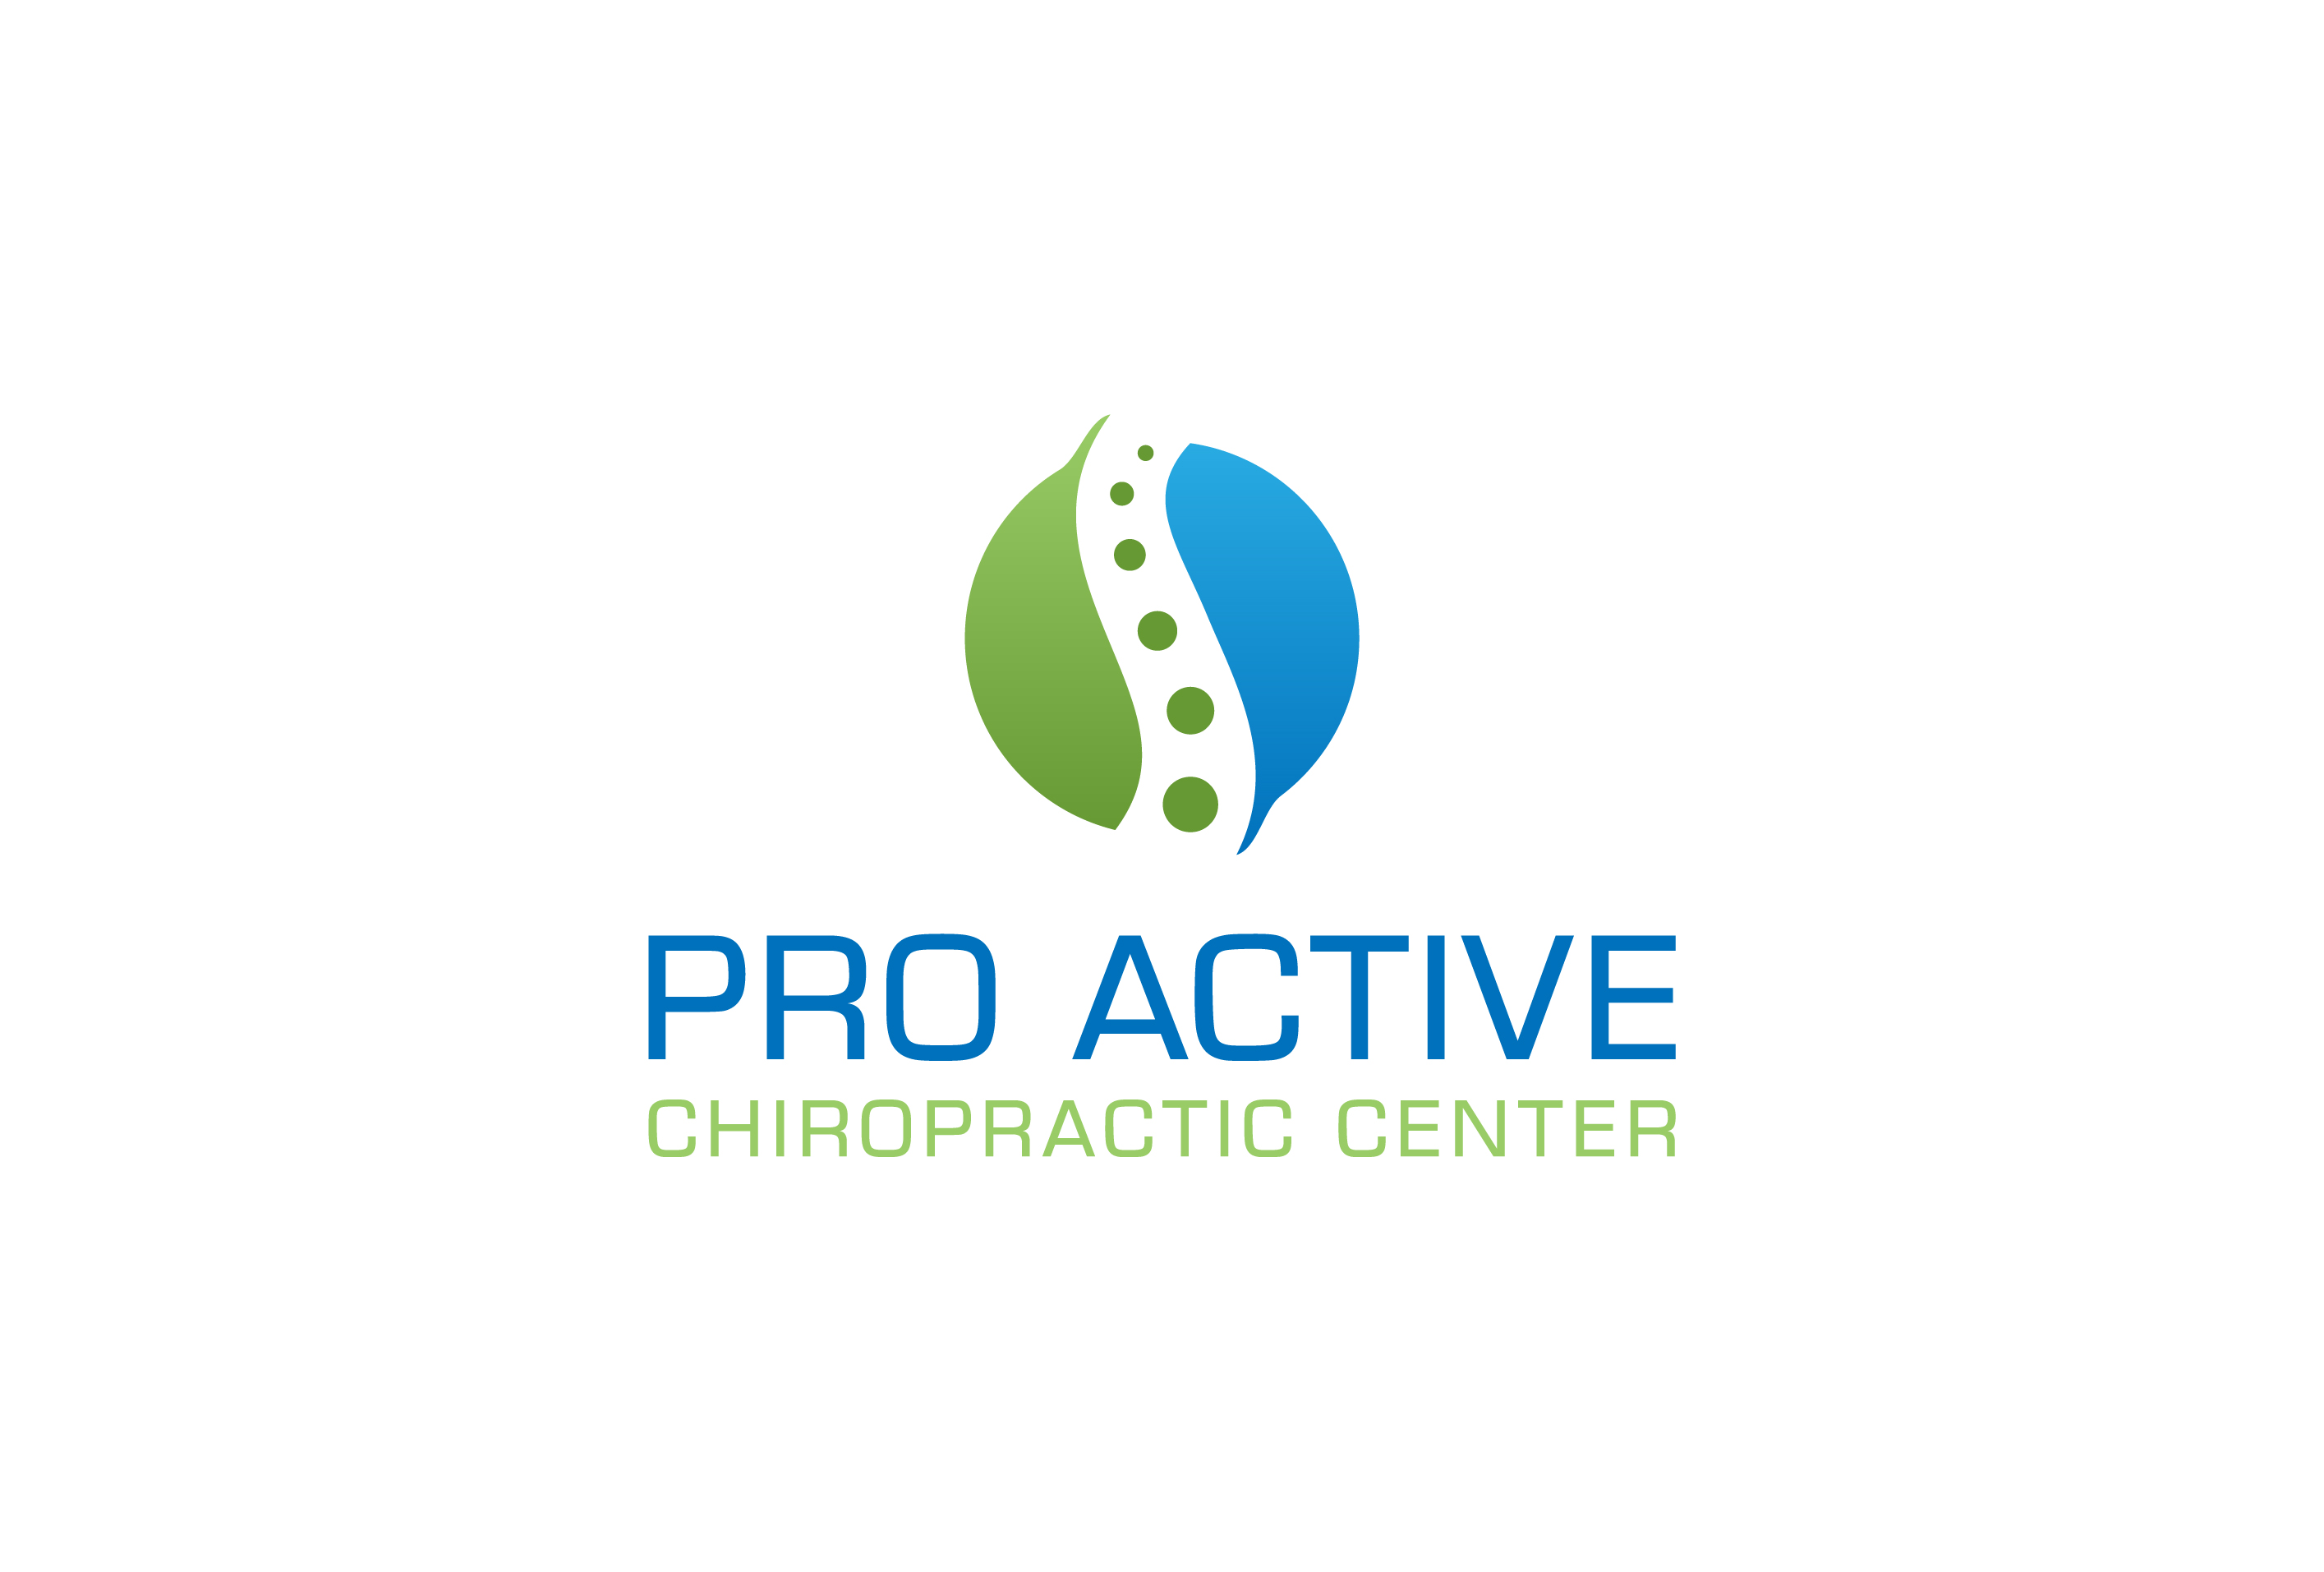 Car Crash Injury And Whiplash Chronic Pain Treated Effectively At Pro Active Chiropractic Center By Dr. Scott Stiffey In Columbia, MO For Lasting Relief